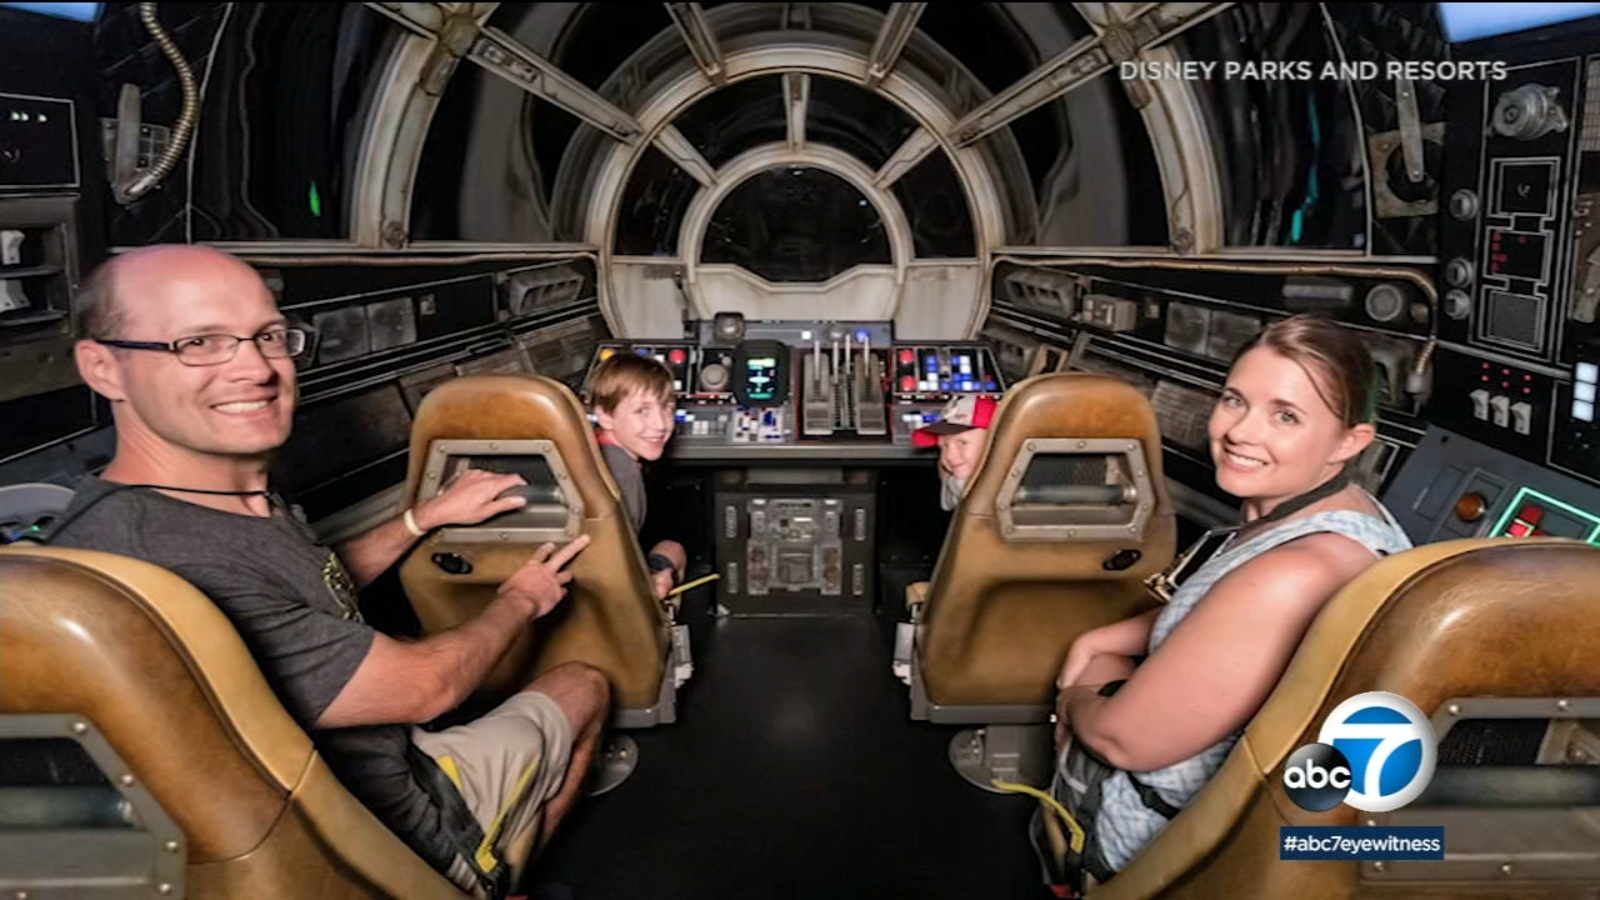 Disneyland's Millennium Falcon ride welcomes 1 millionth 'flight crew' six weeks after opening